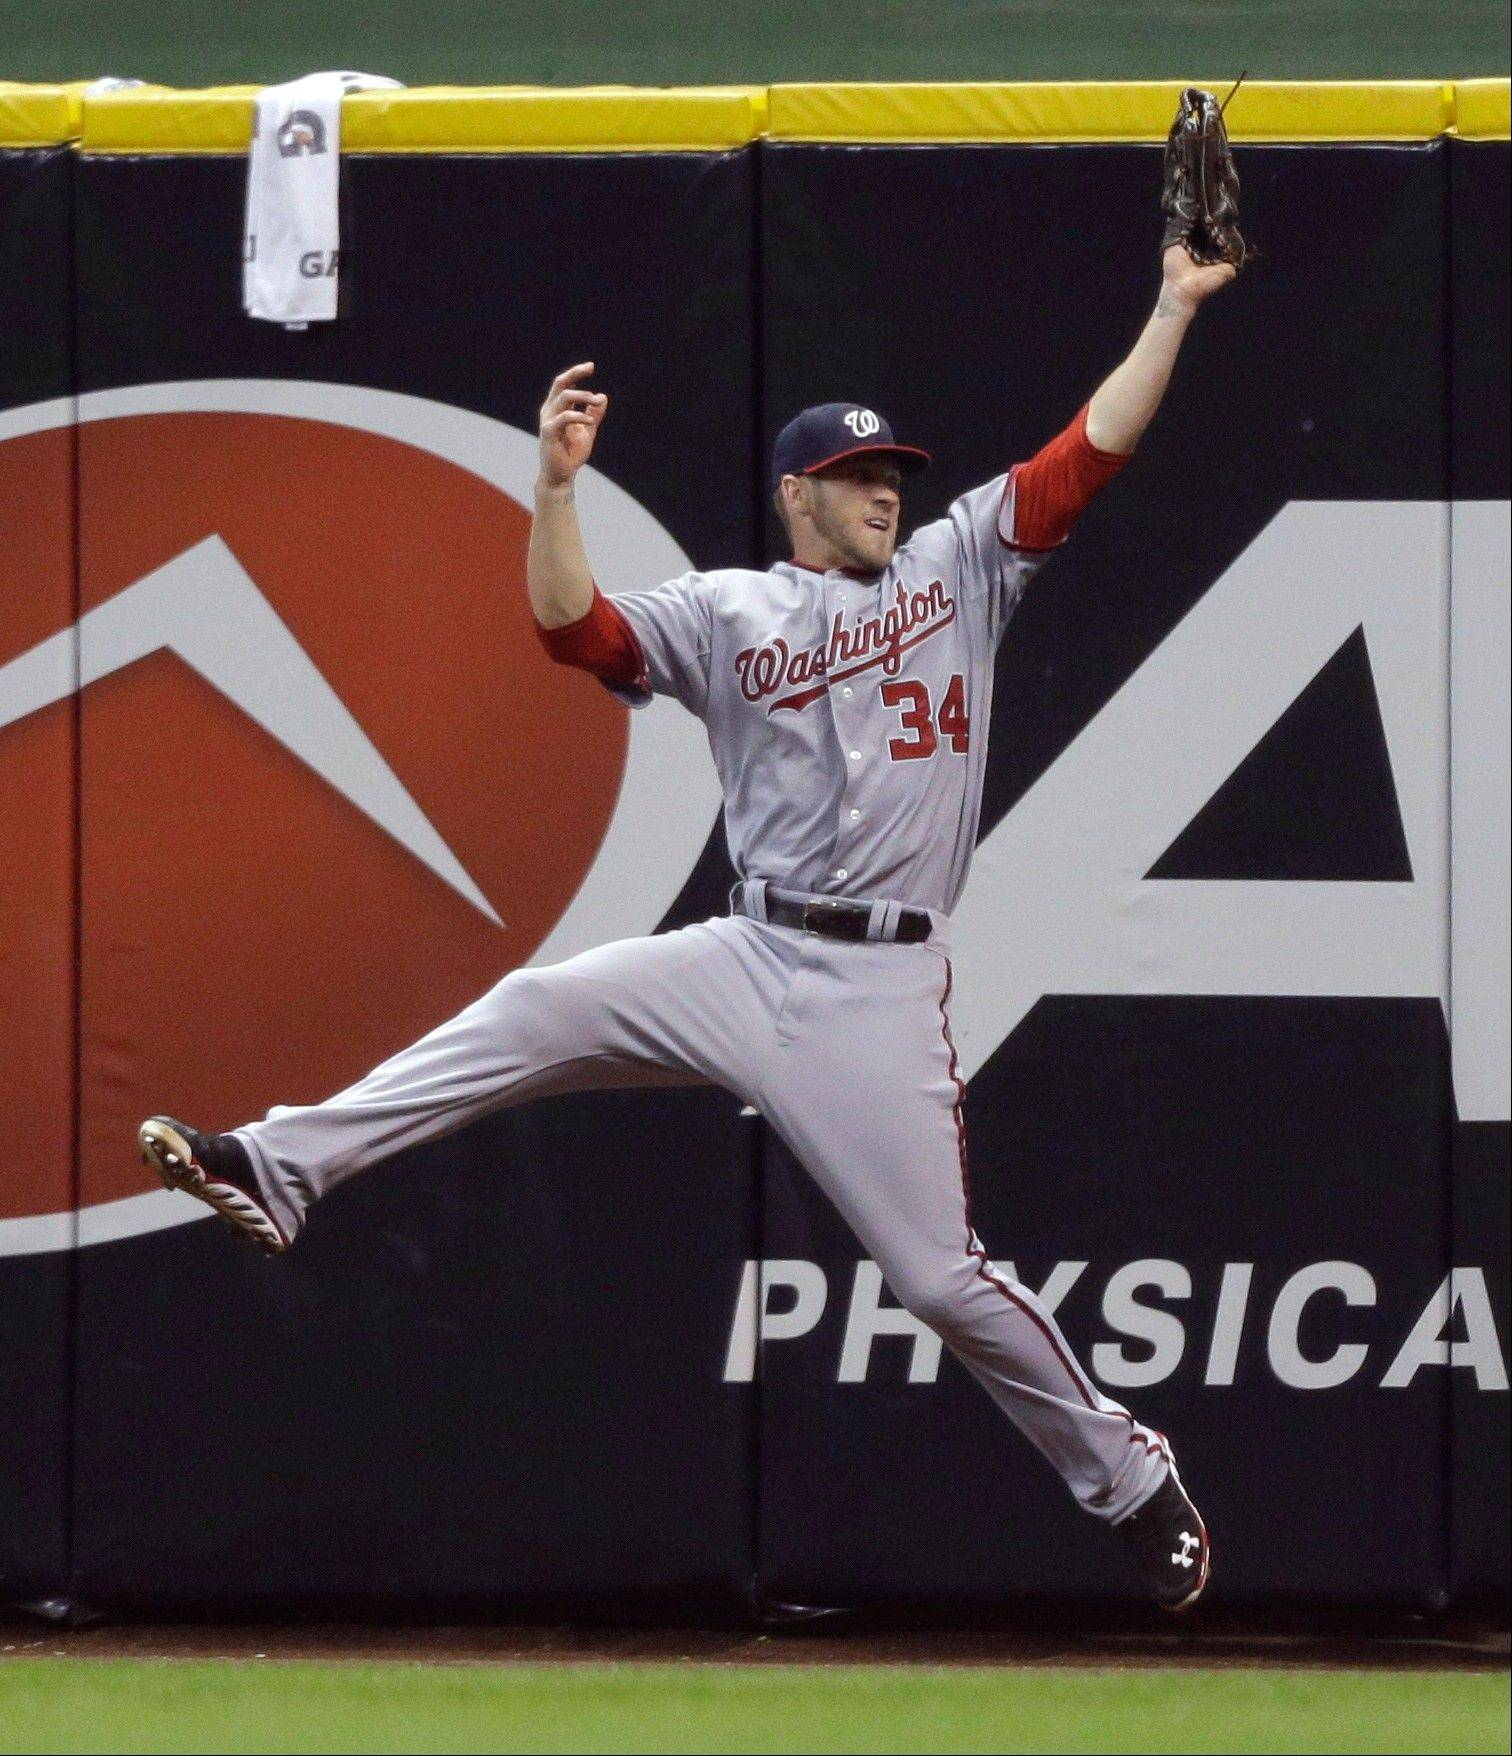 The Nationals' Bryce Harper leaps to make the catch on a ball hit by the Brewers' Corey Hart during the eighth inning Thursday in Milwaukee.